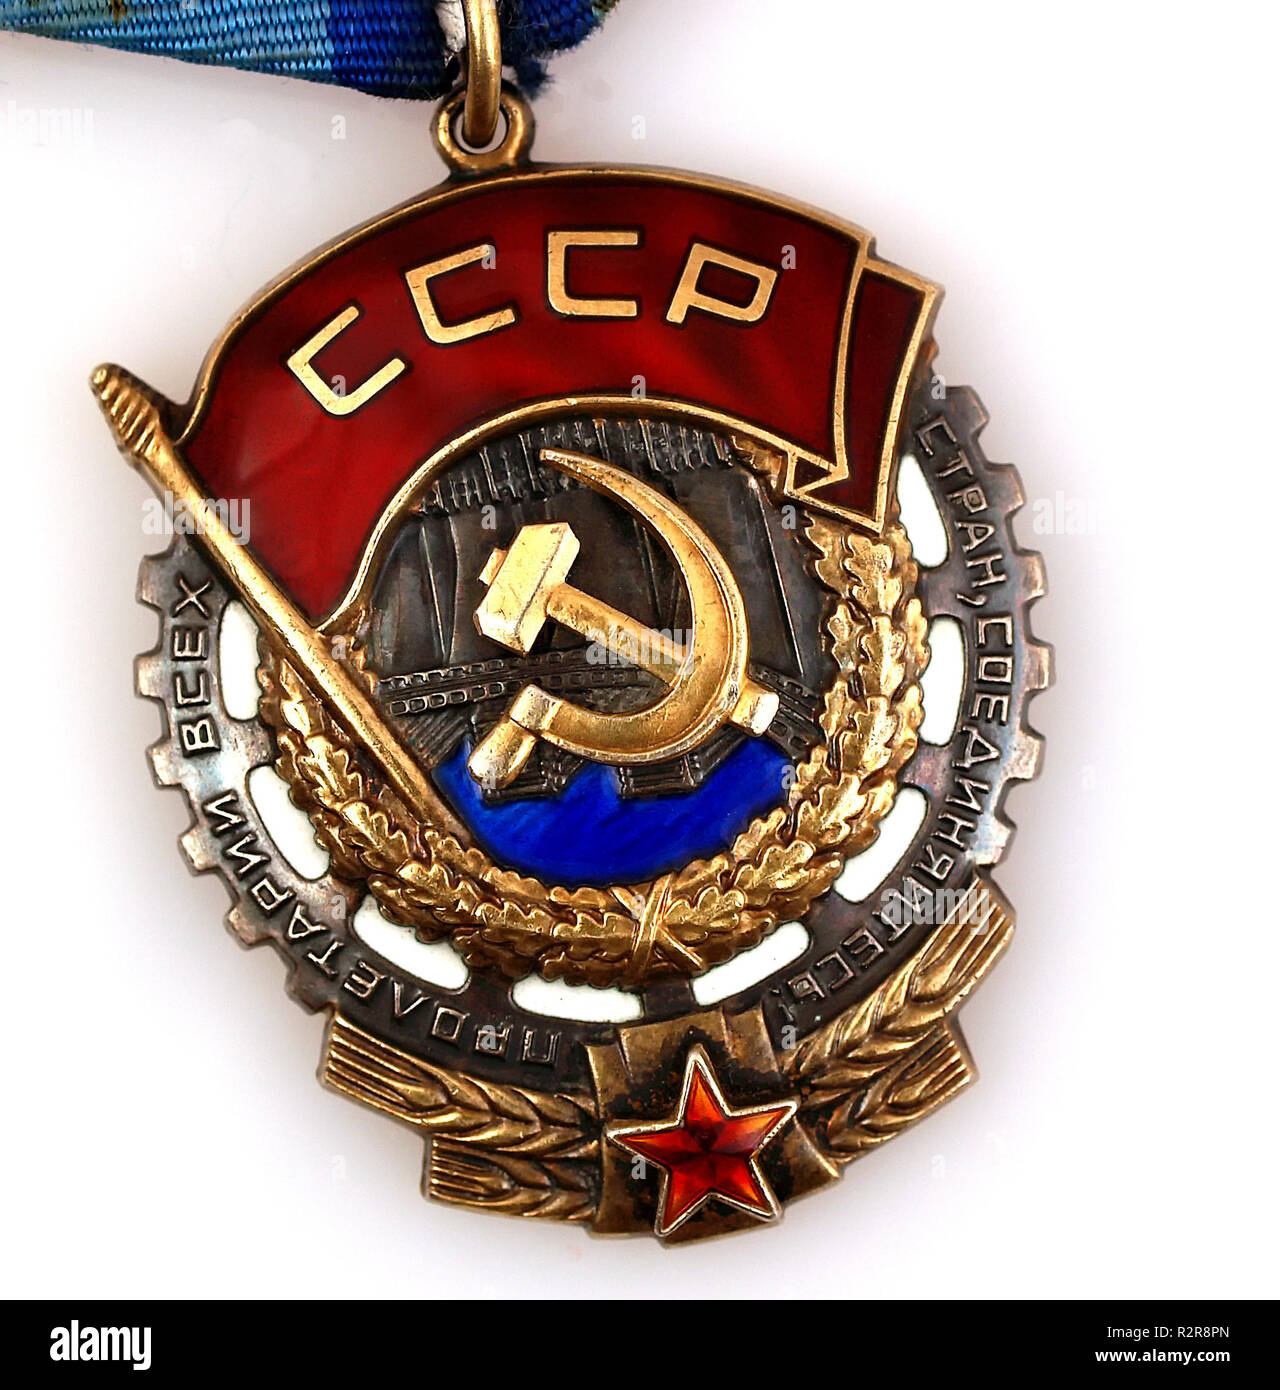 order of the red banner of labor - Stock Image